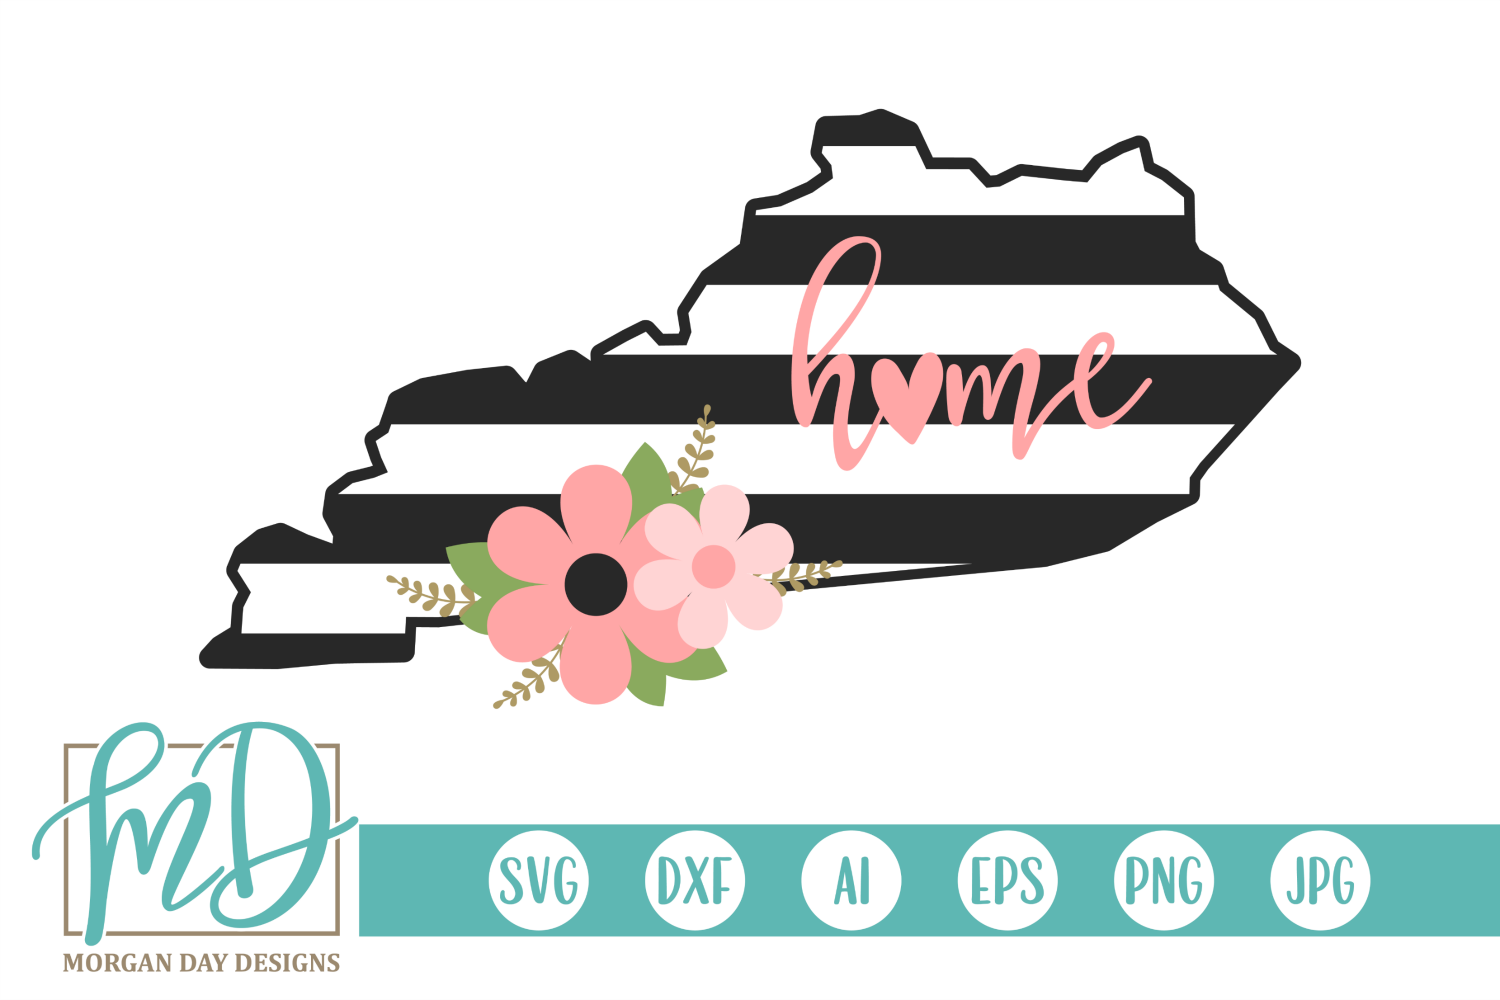 Download Free Floral Kentucky Graphic By Morgan Day Designs Creative Fabrica for Cricut Explore, Silhouette and other cutting machines.